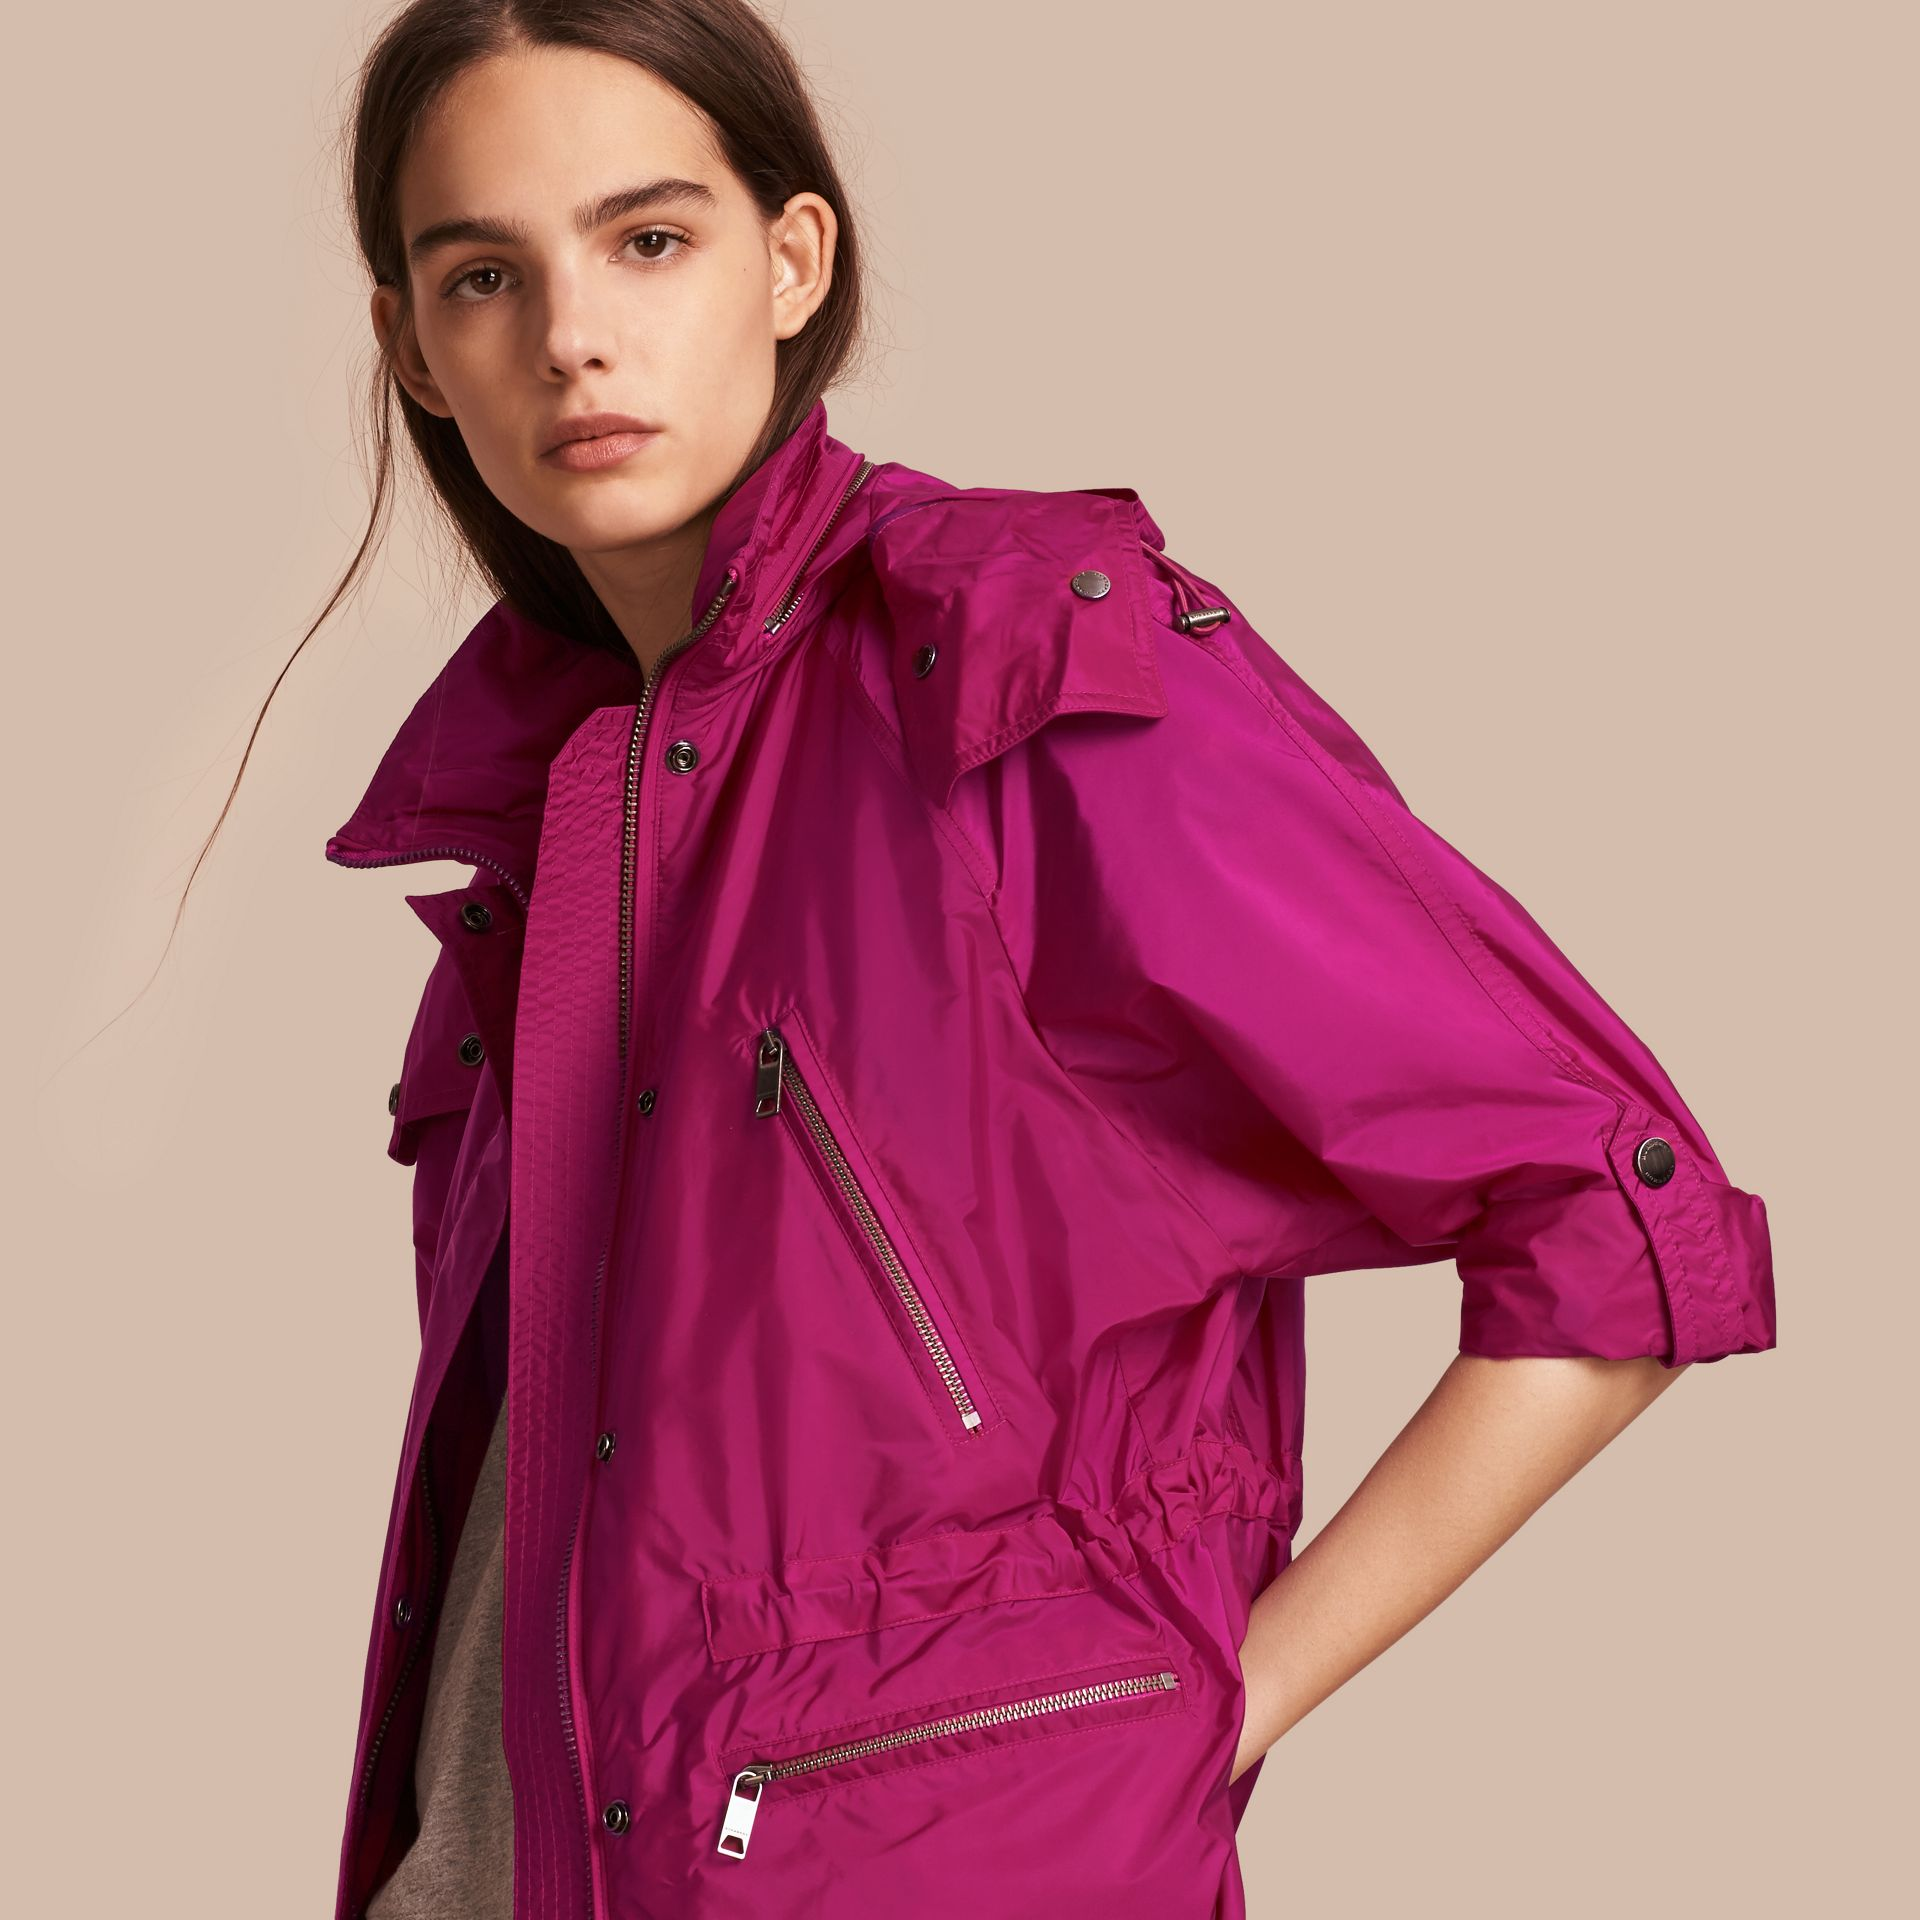 Showerproof Parka Jacket with Packaway Hood in Fuchsia - gallery image 1